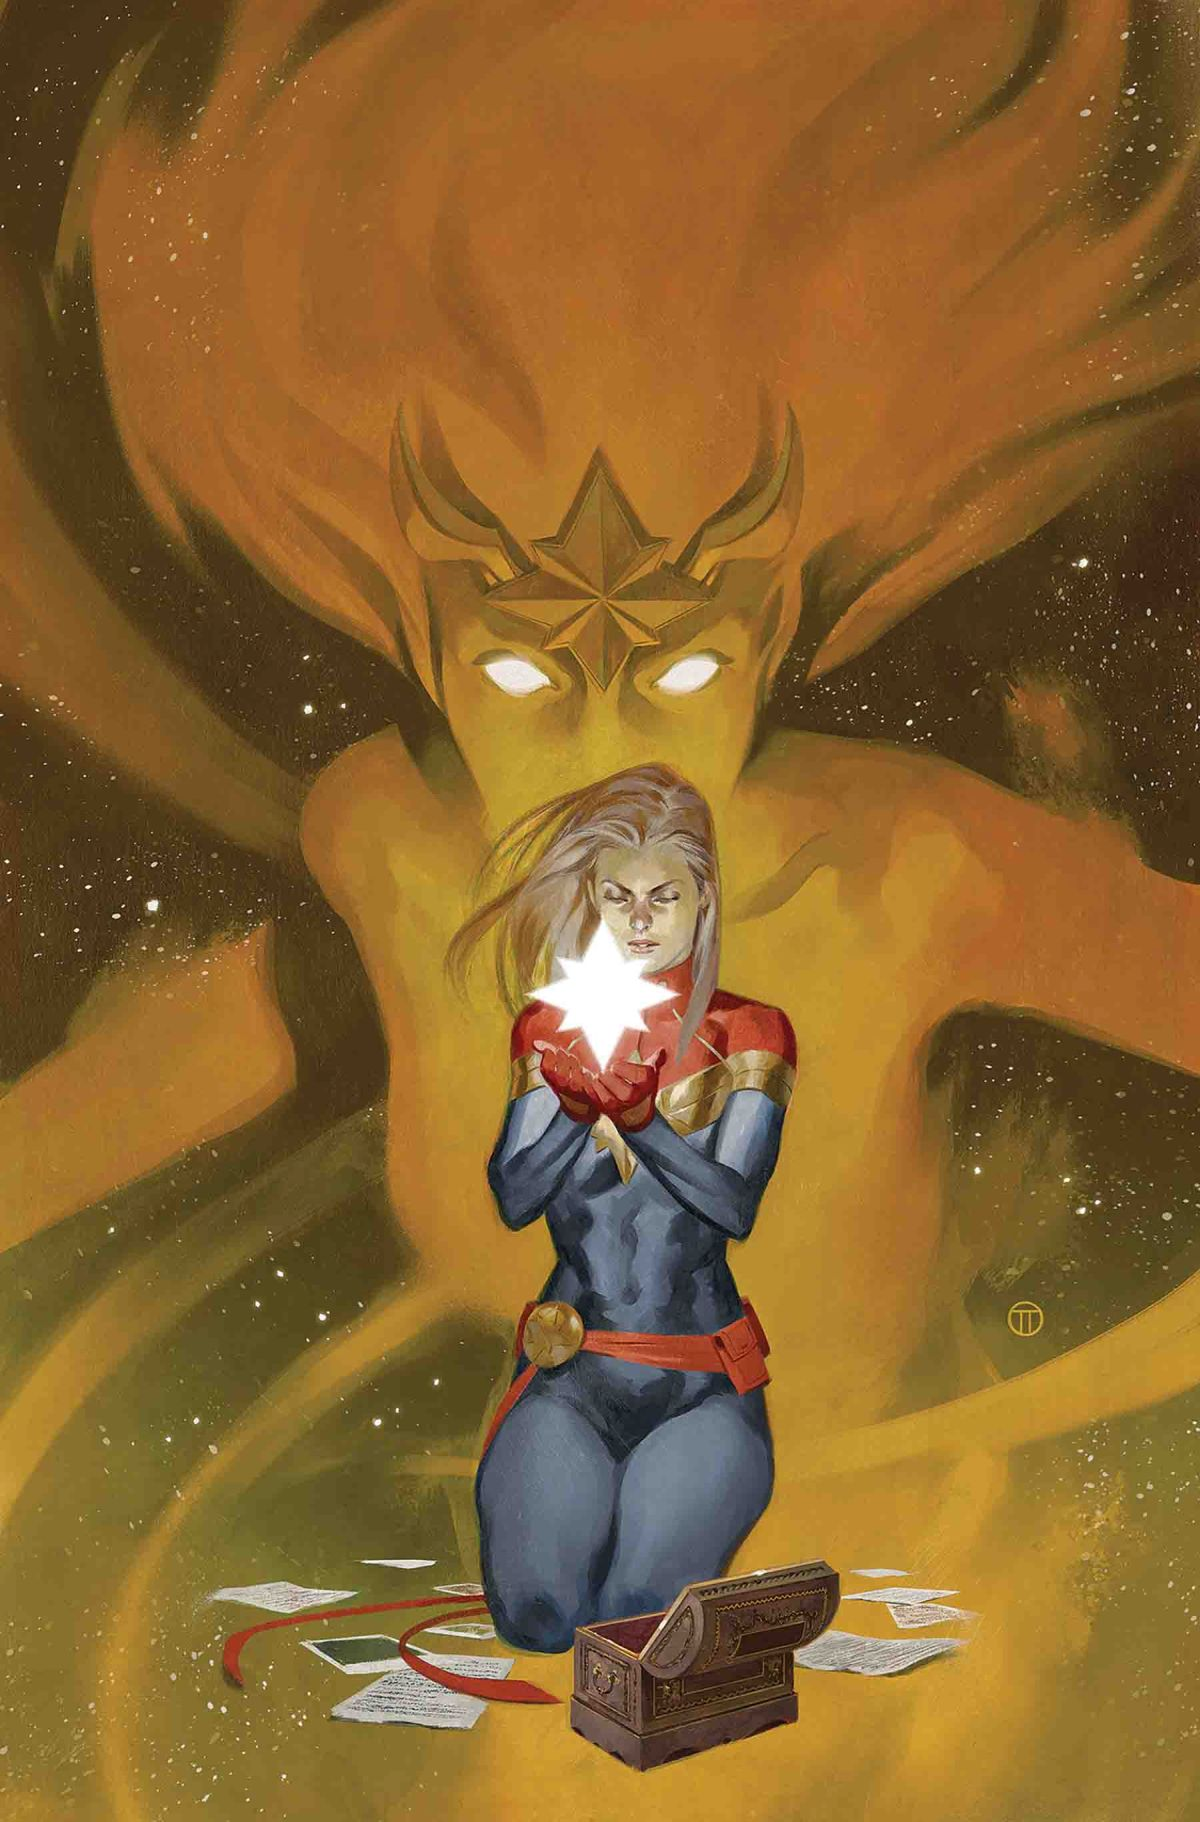 THE LIFE OF CAPTAIN MARVEL #4 (OF 5)